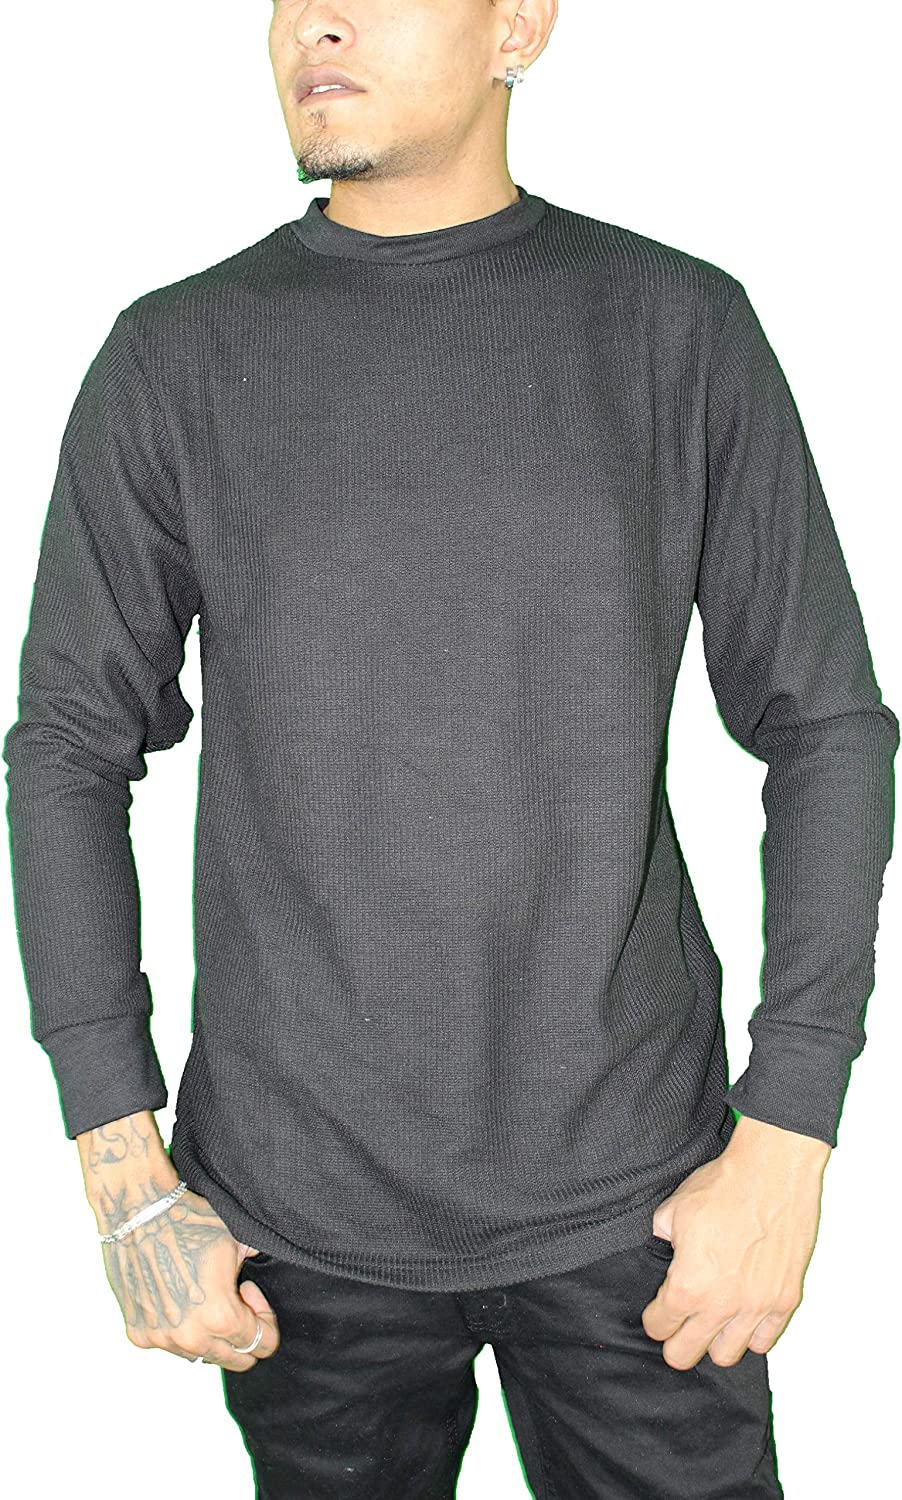 Unique Styles Mens Thermal Top Heavyweight Long Sleeve Waffle Weave Crew Neck